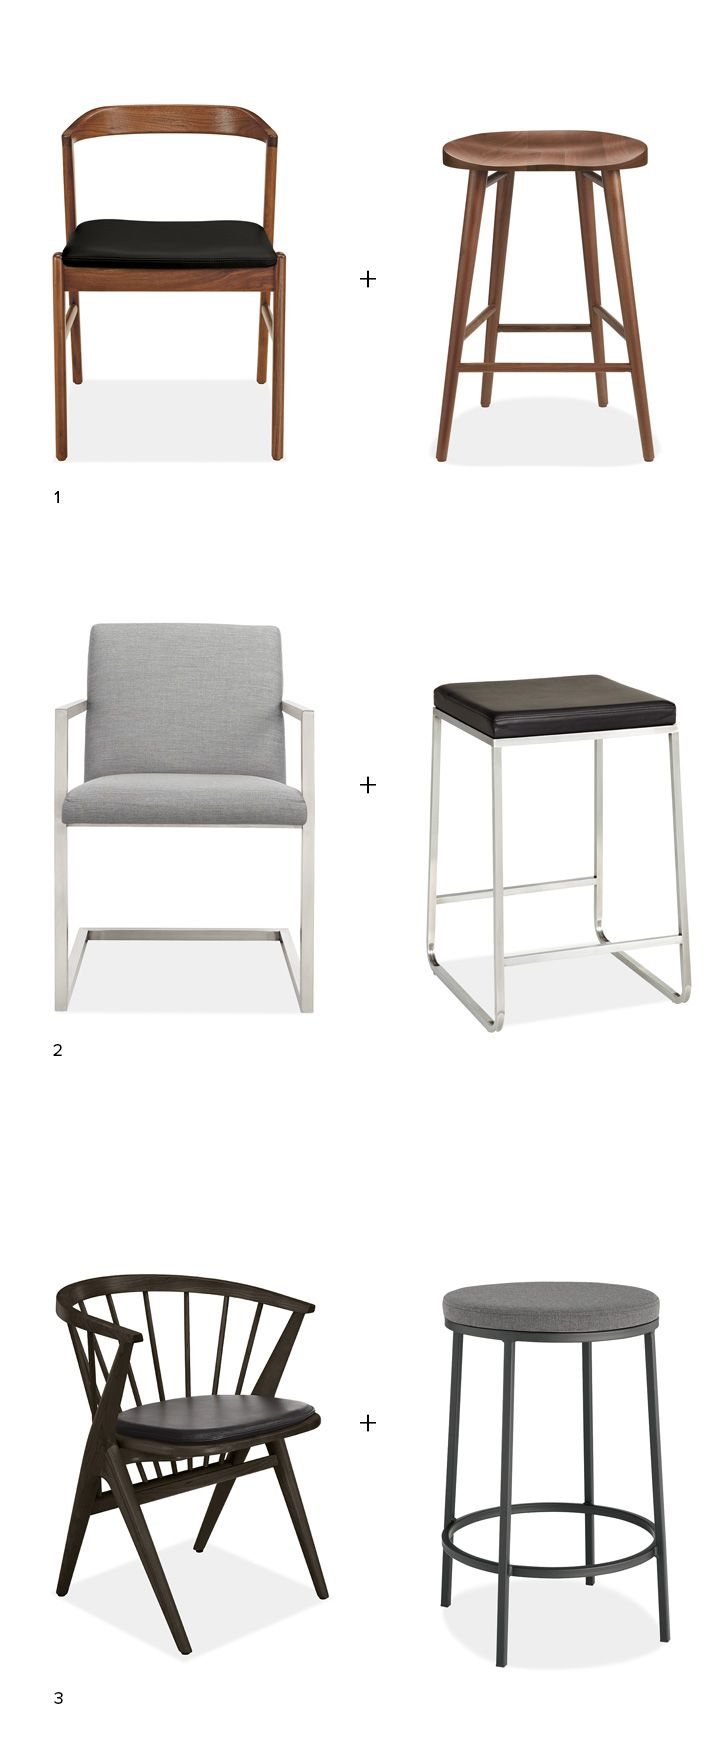 Counter Stools And Dining Chairs How To Find The Right Mix Kitchen Stools Bar Stools Kitchen Chairs